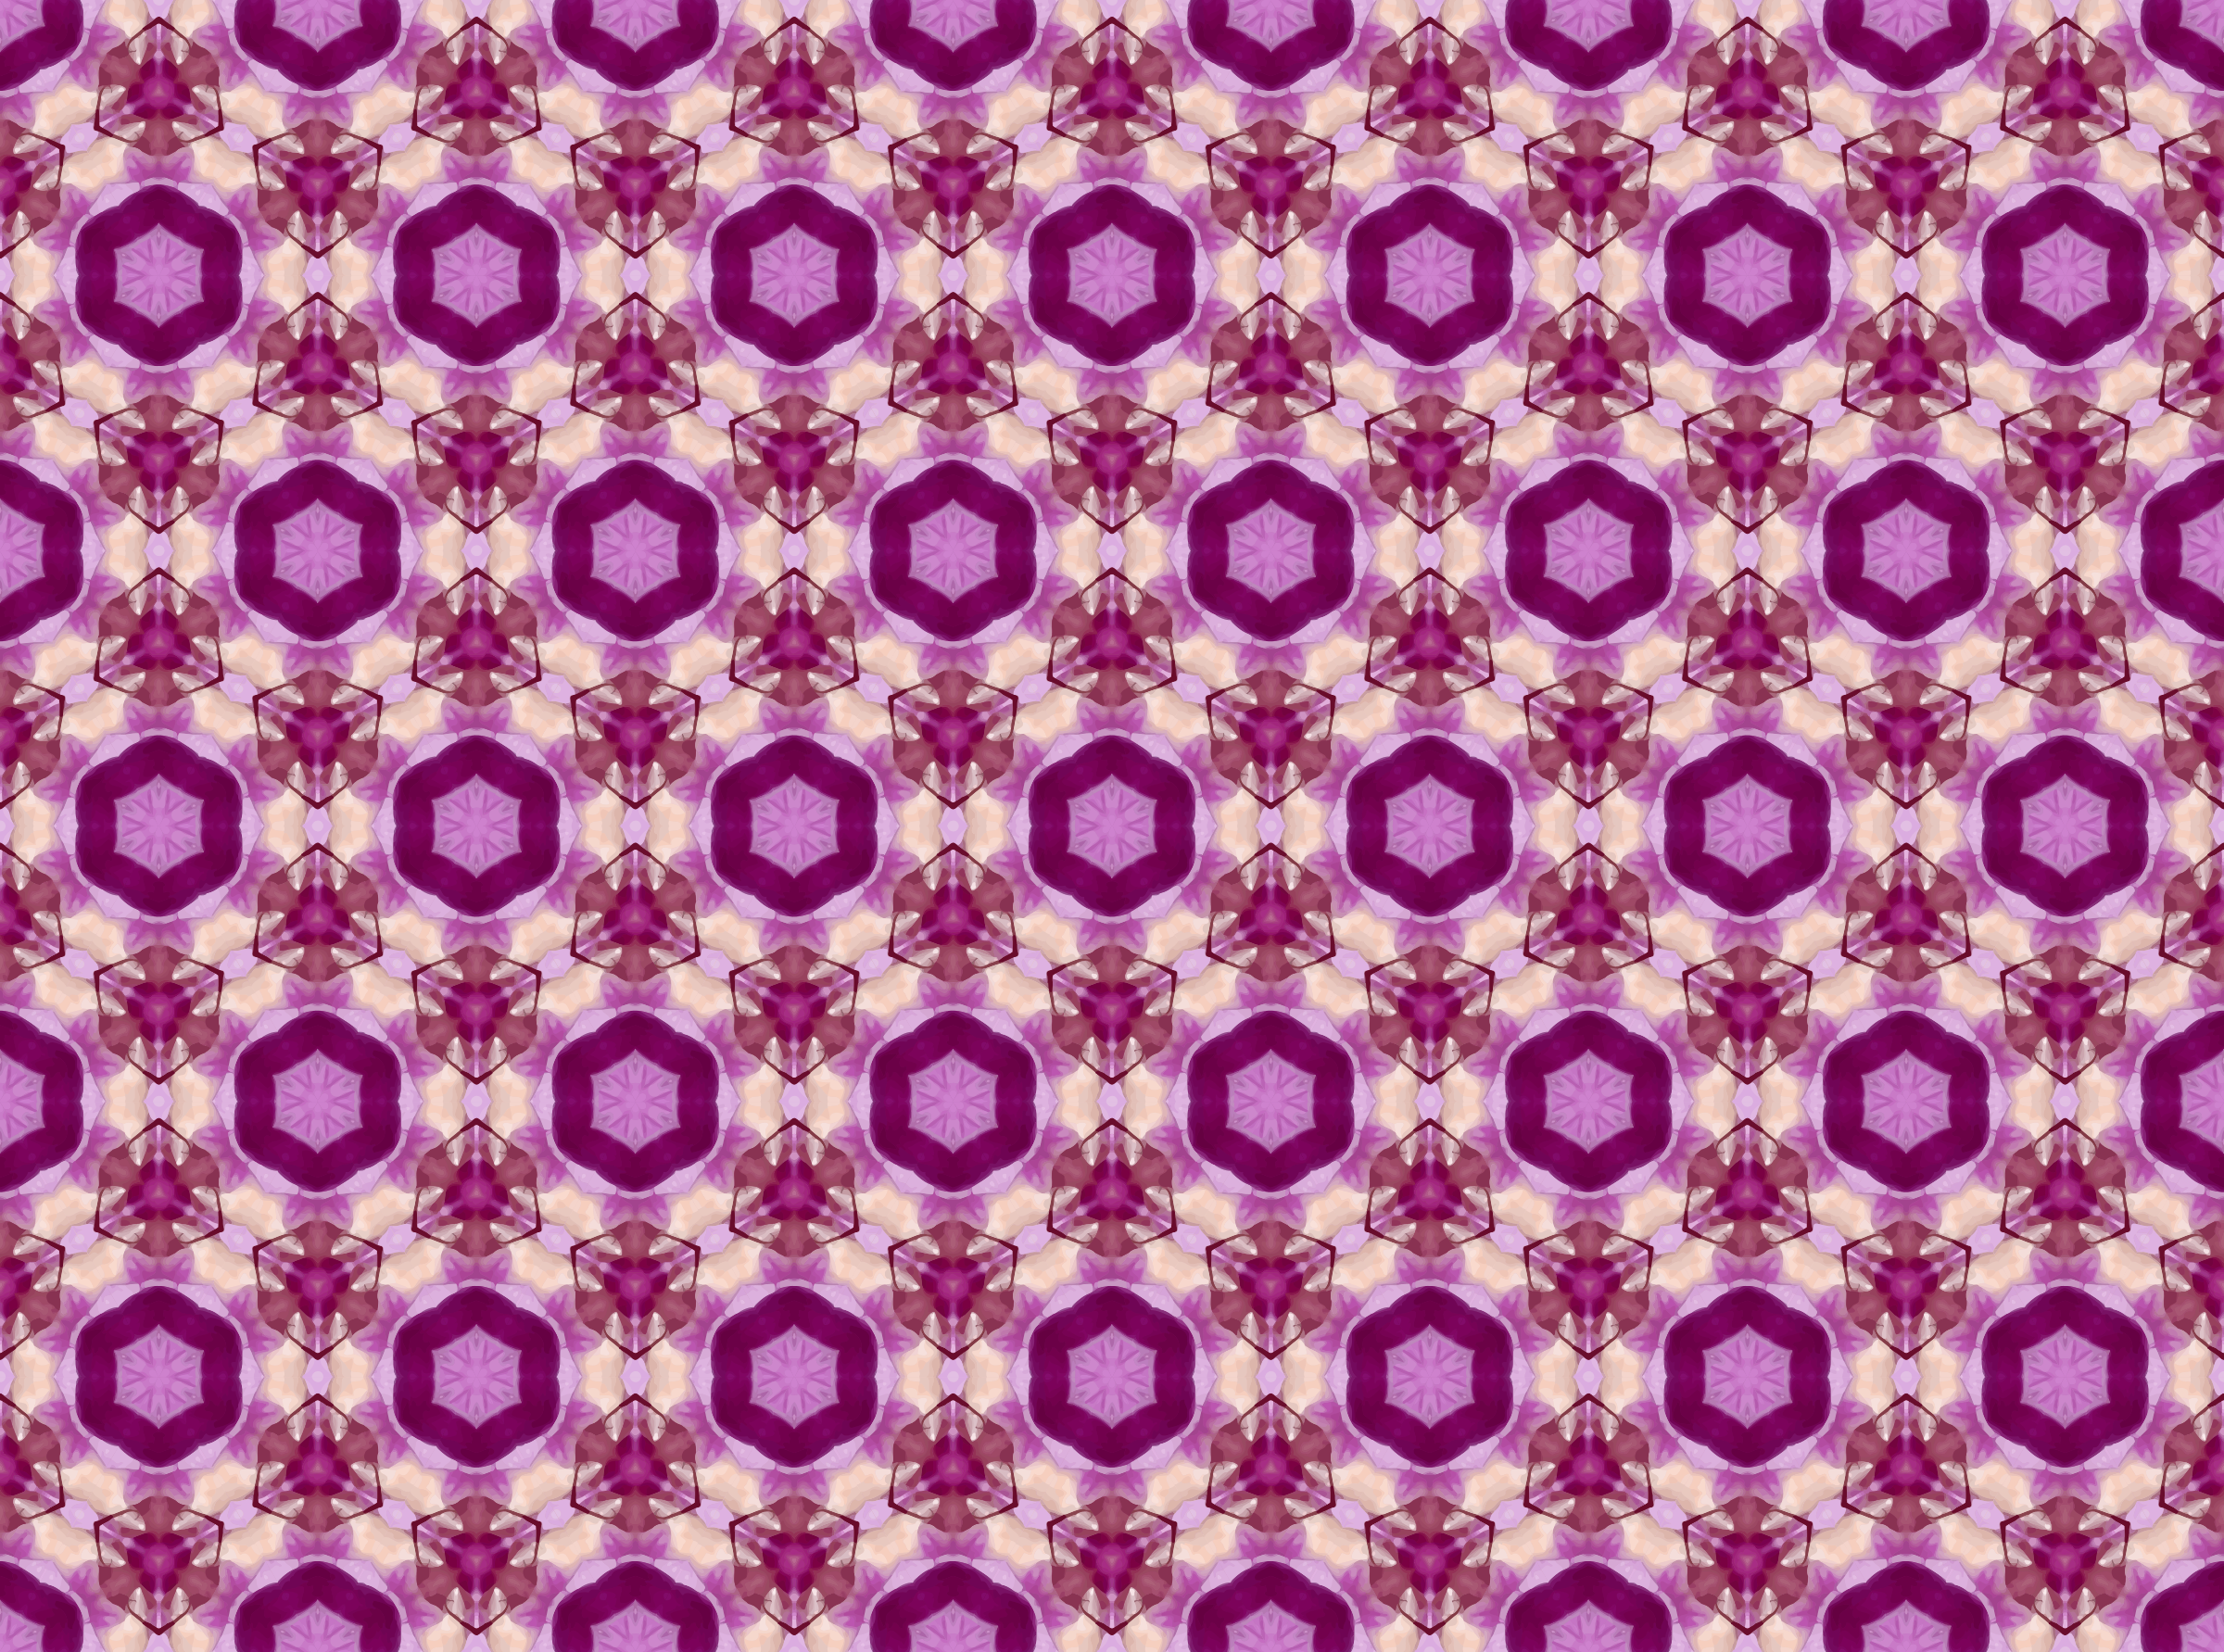 Background pattern 102 by Firkin